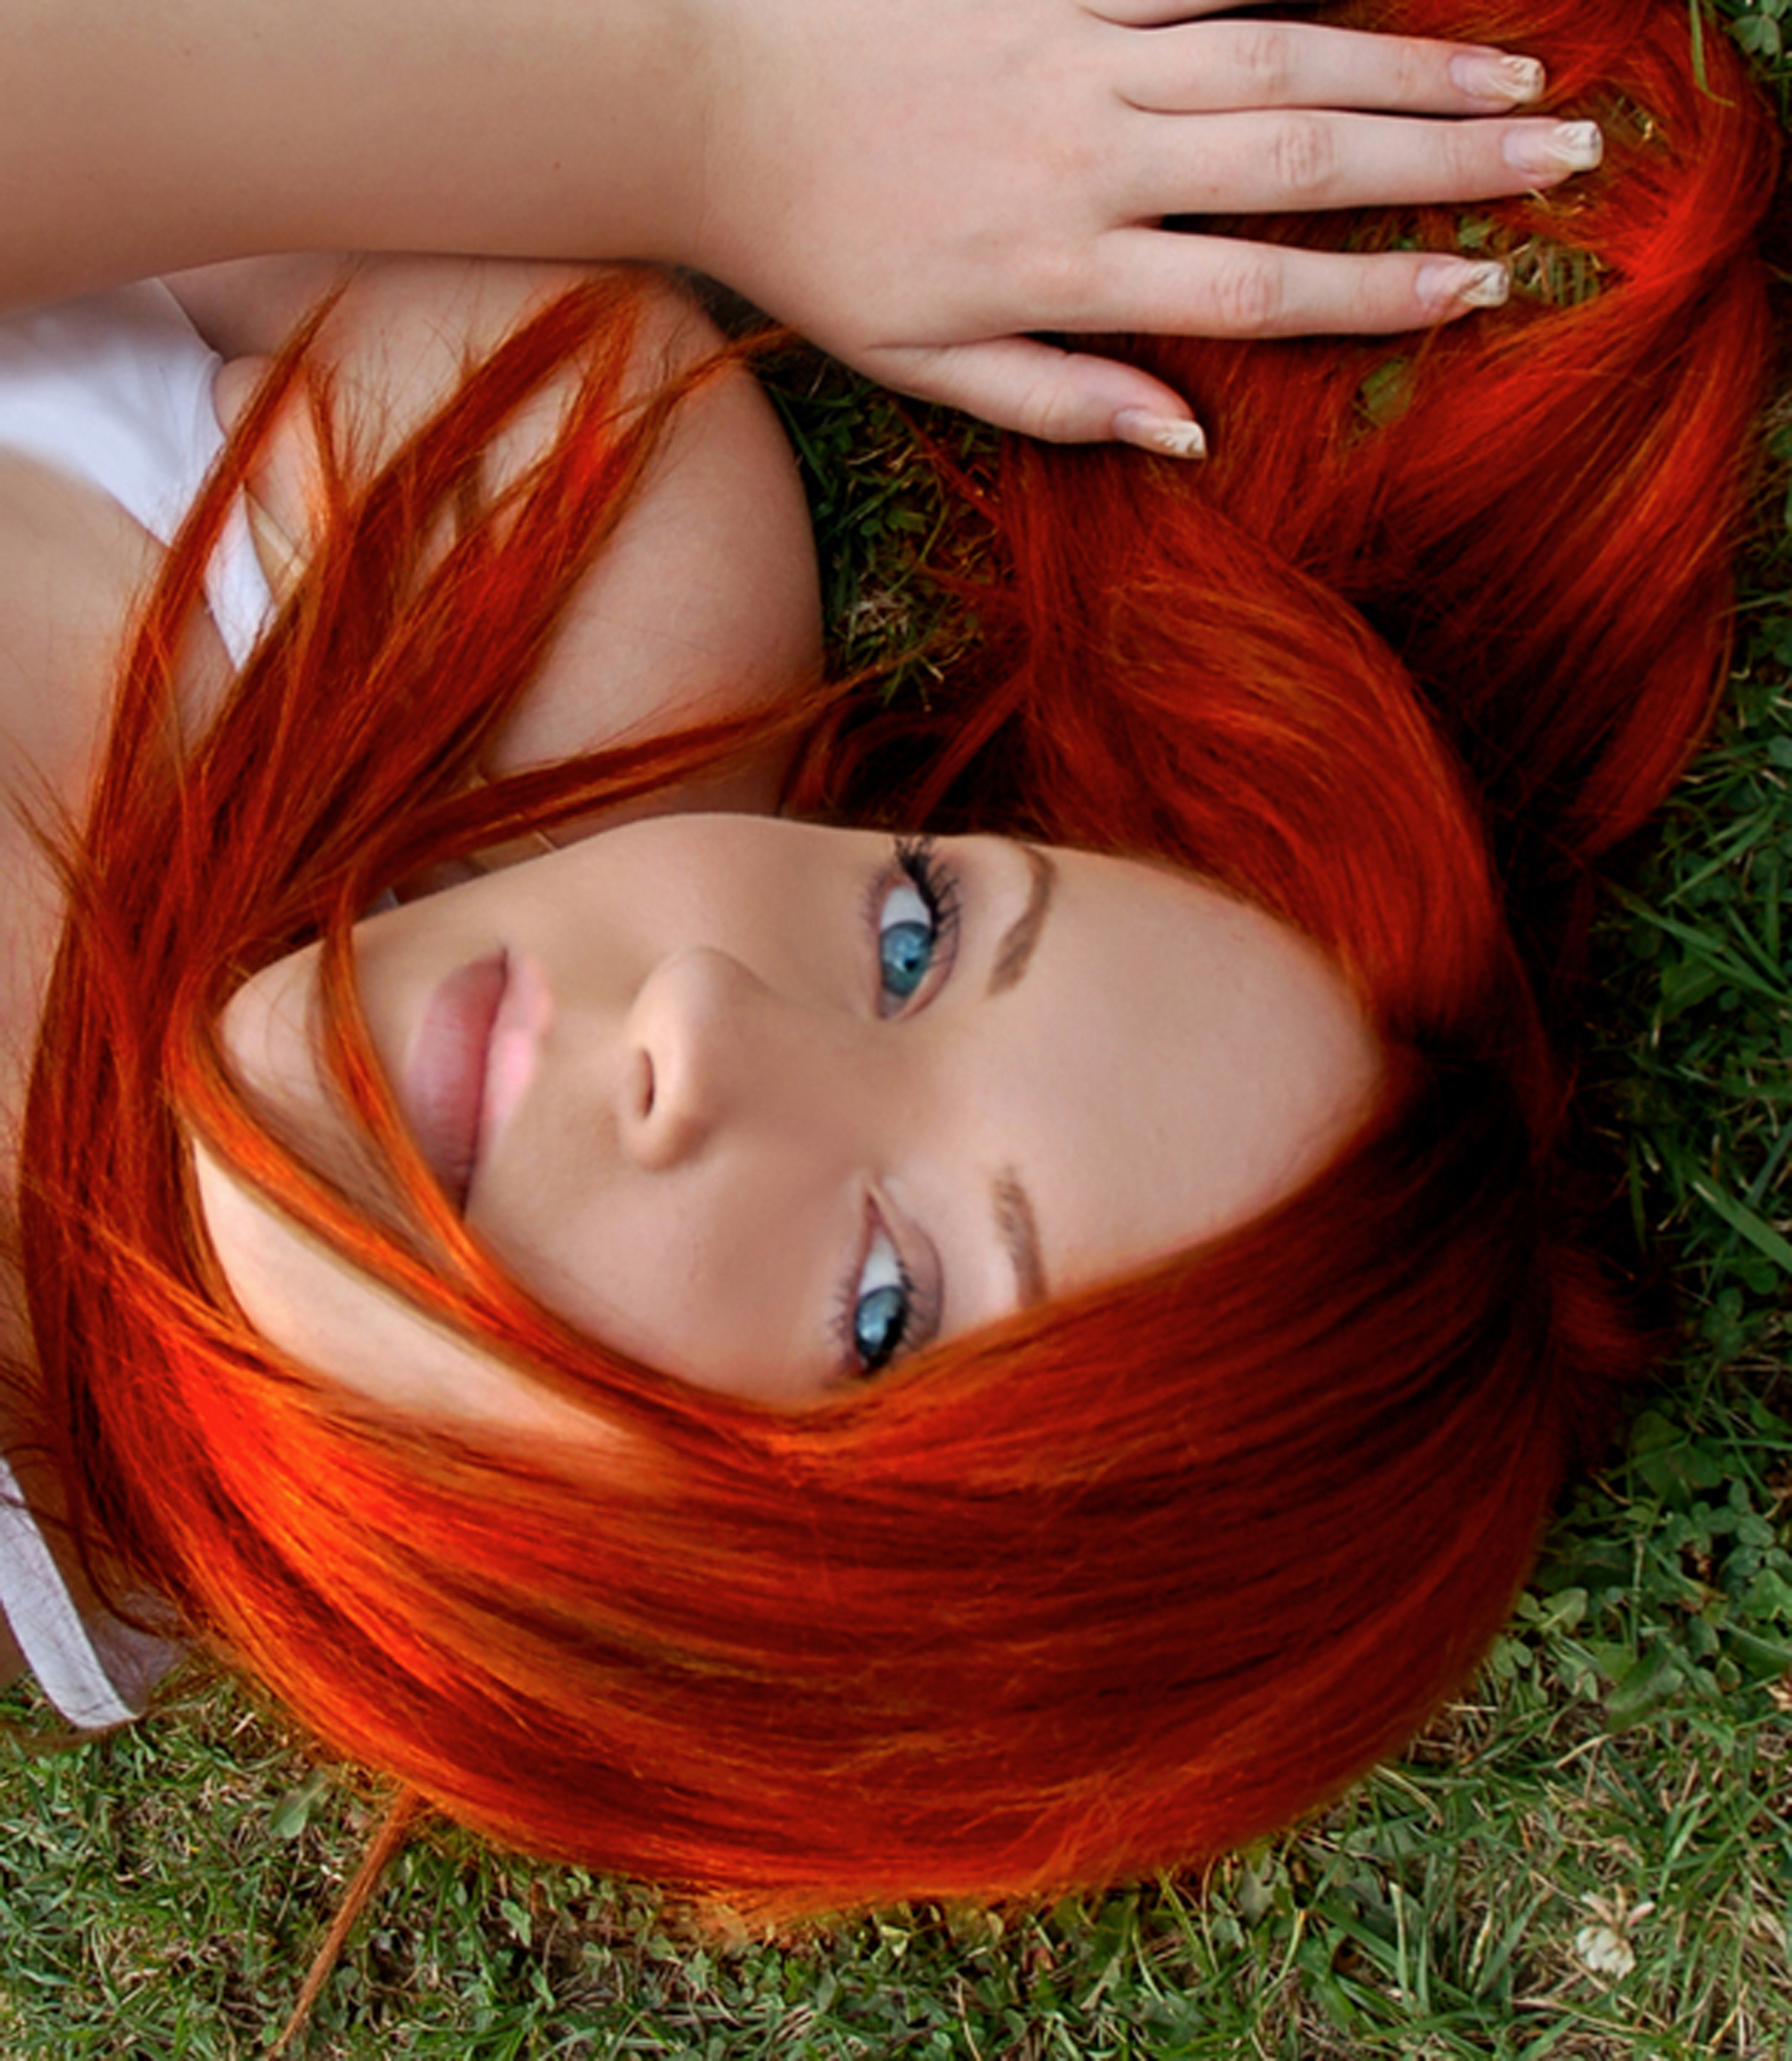 hair color | The Vibrant Channeled Creator